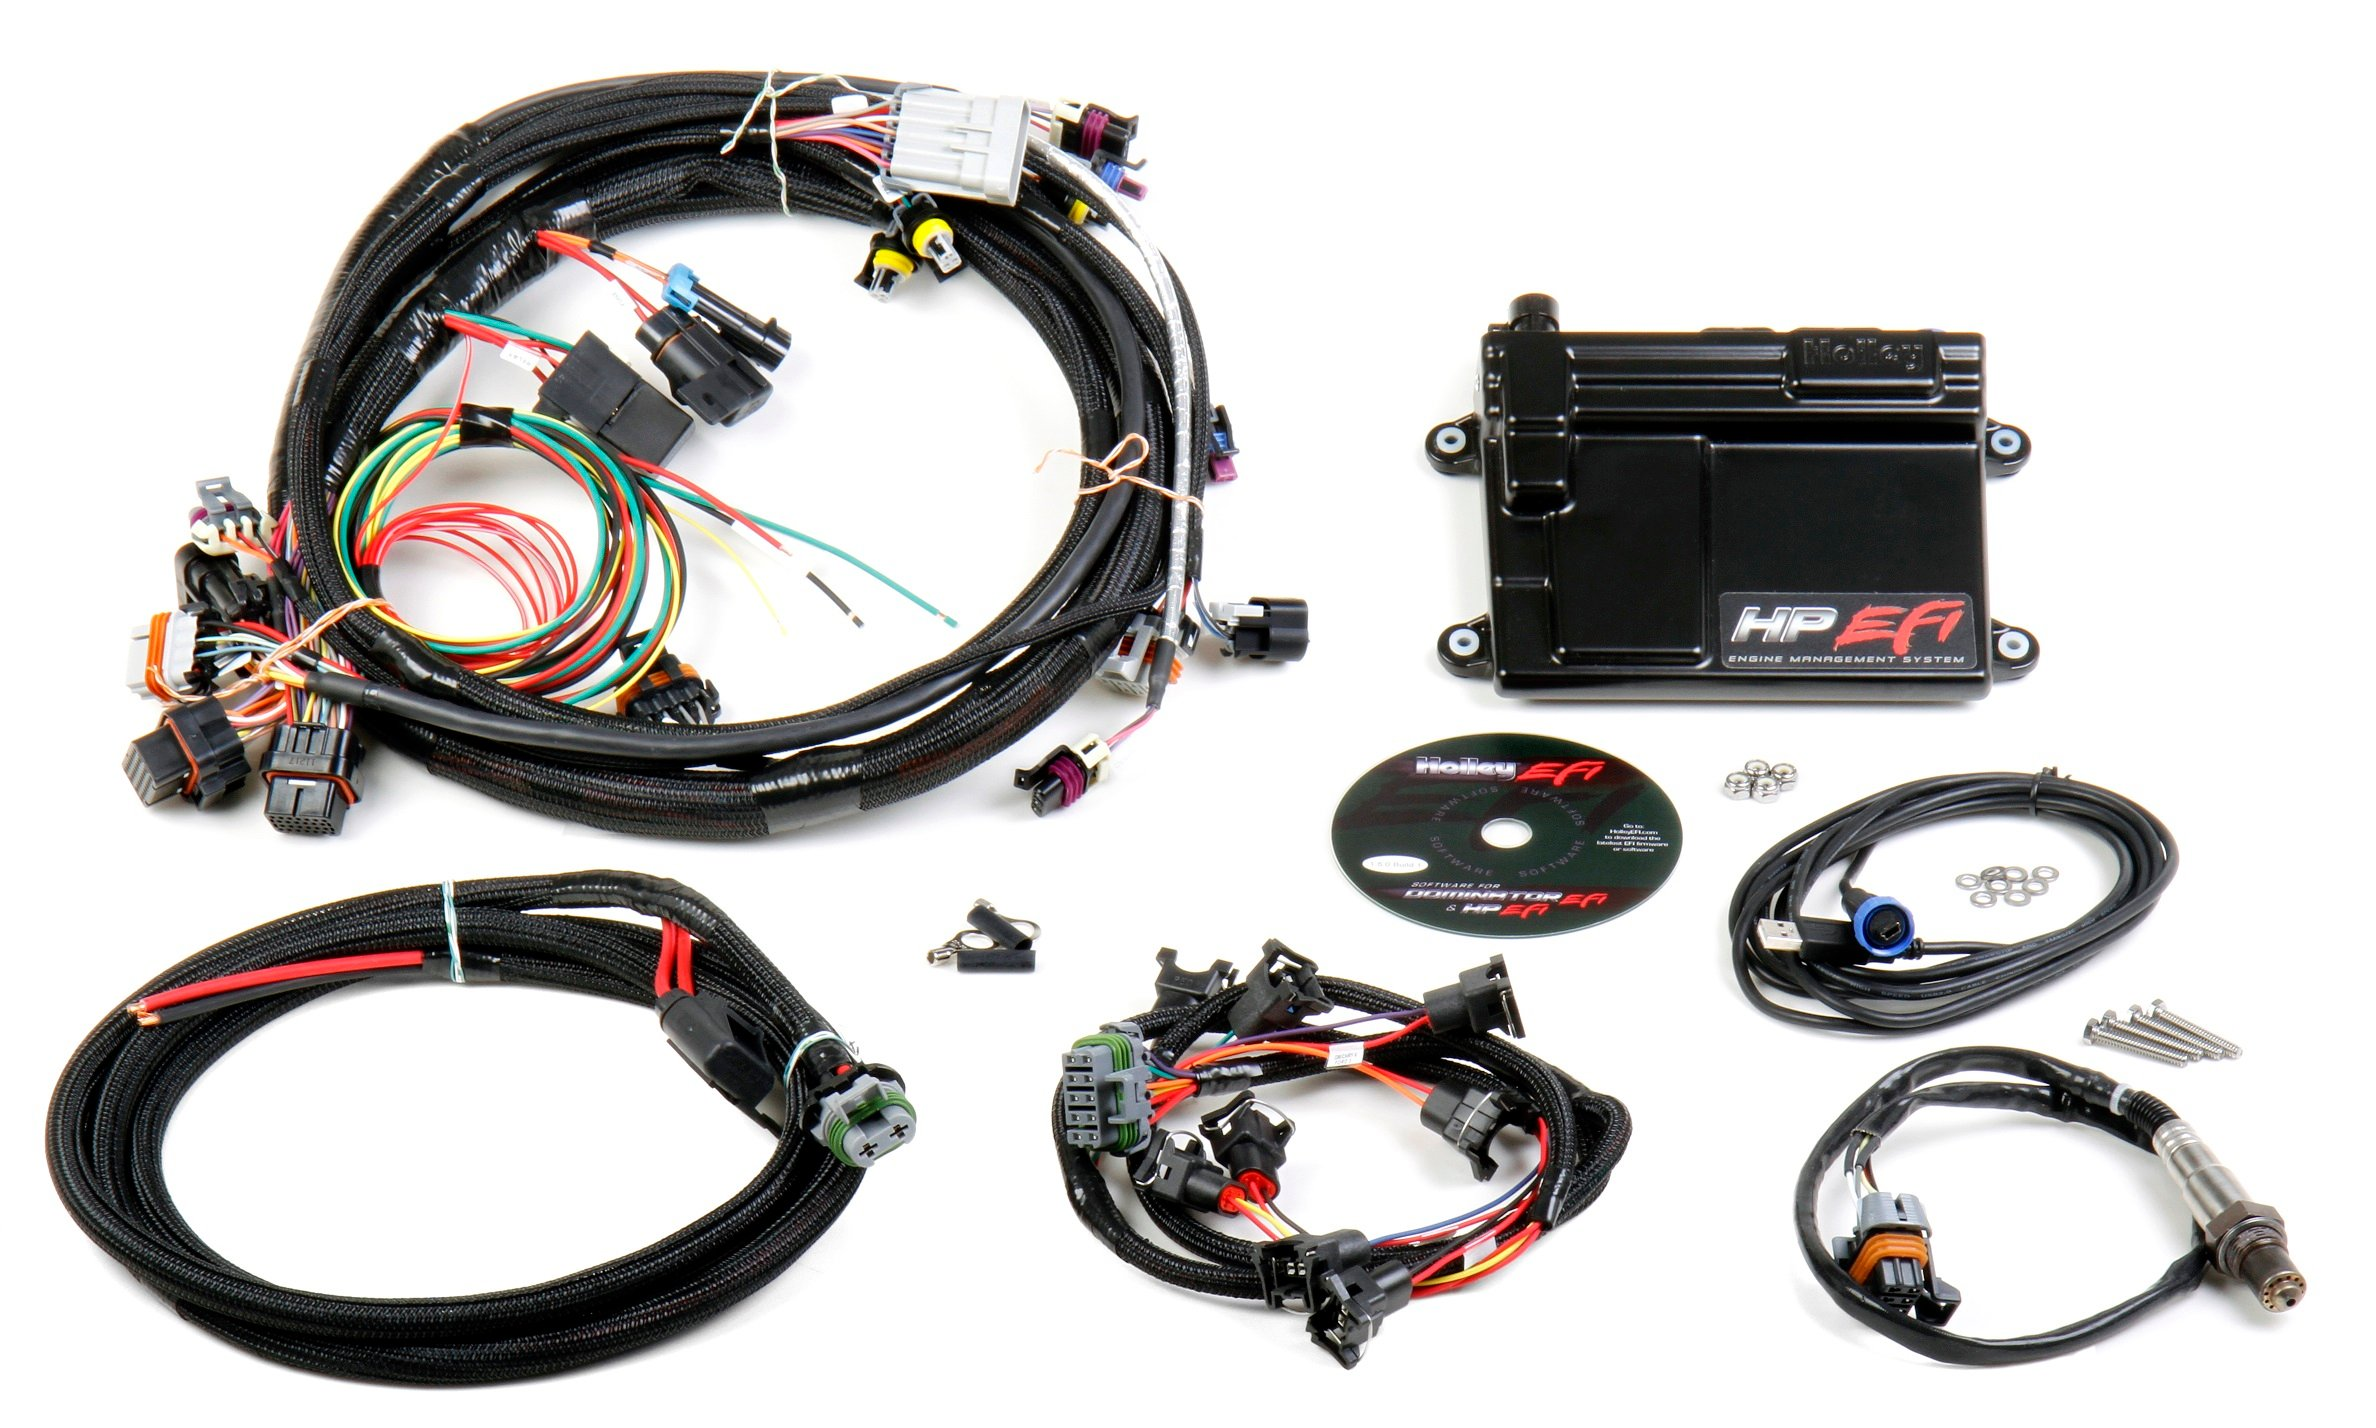 550 602 holley efi 550 602 hp efi ecu & harness kits aftermarket ls wiring harness at alyssarenee.co